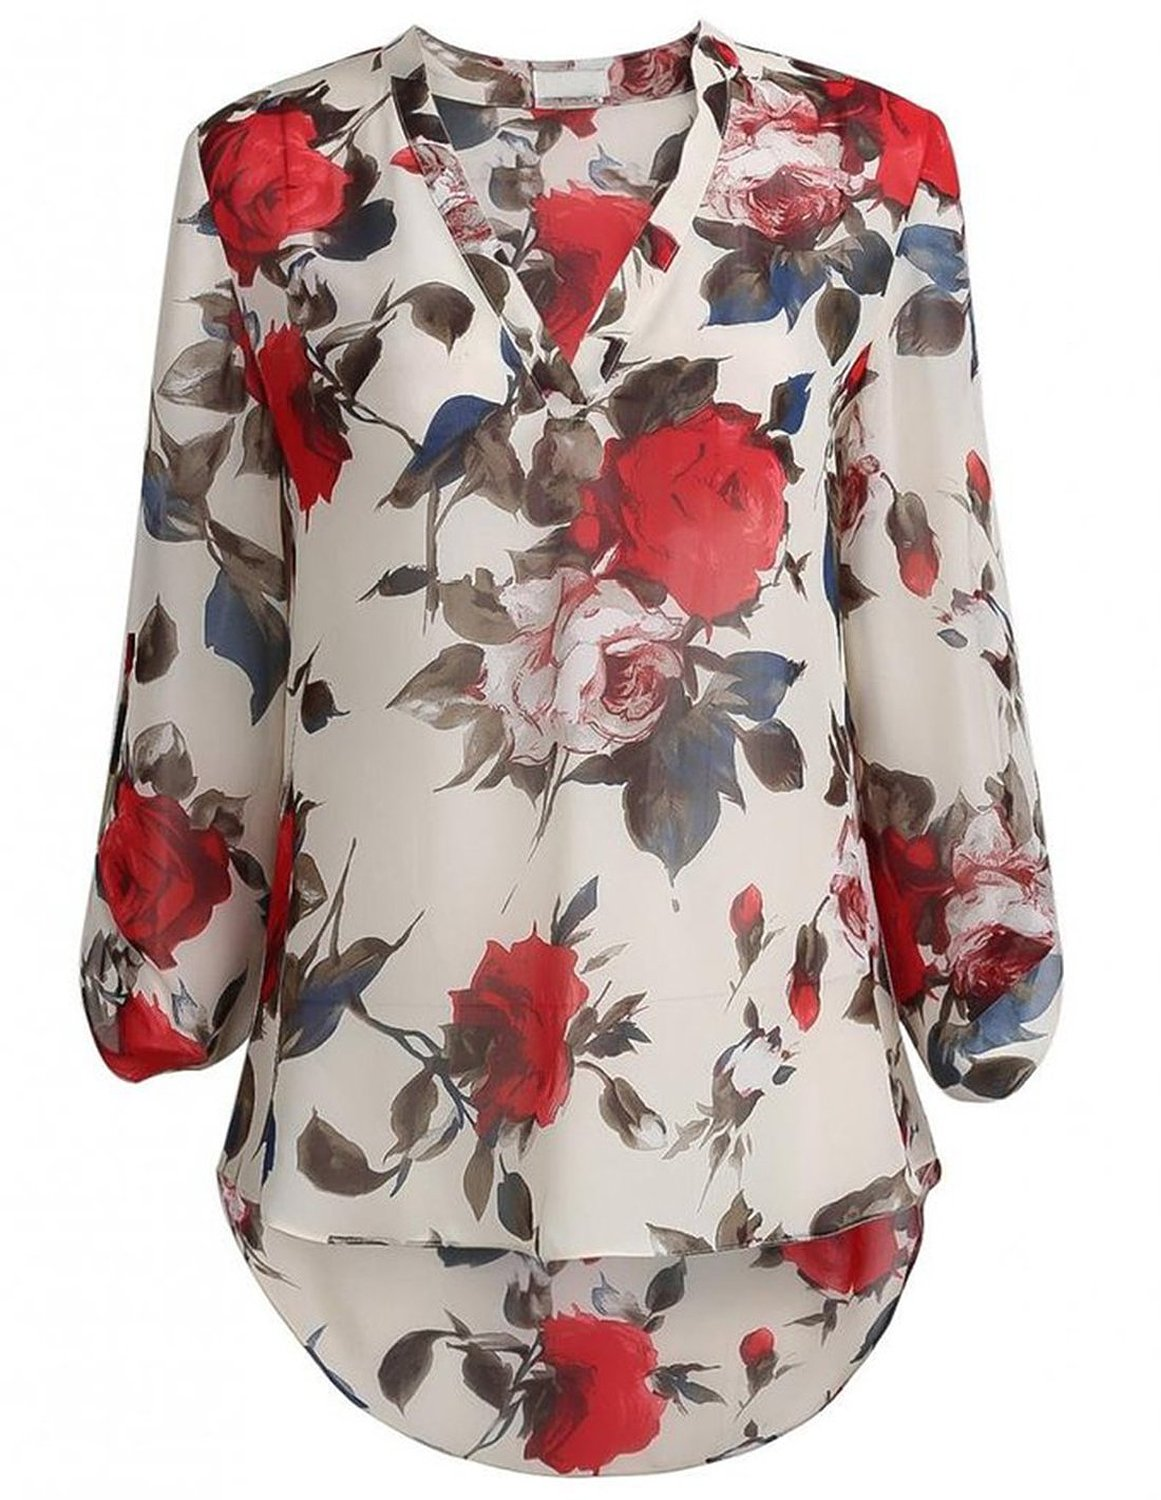 SheIn Women's Apricot Floral Printed V Neck High Low Hem Blouse at Amazon Women's Clothing store